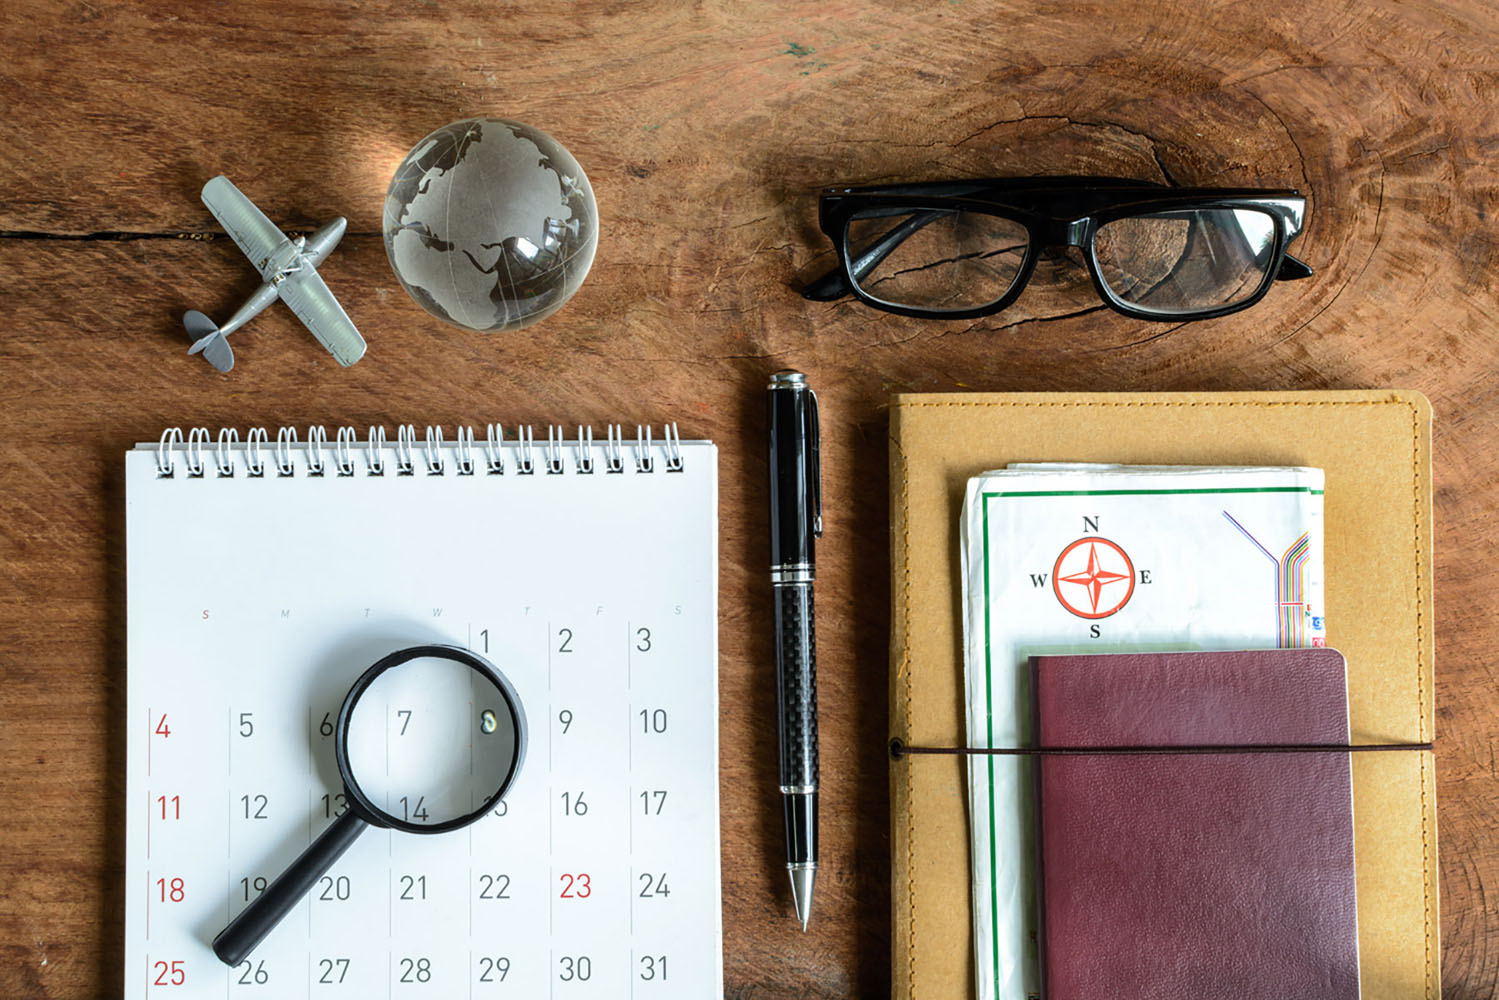 A travel calendar, glasses, a pen, and other important items for travel